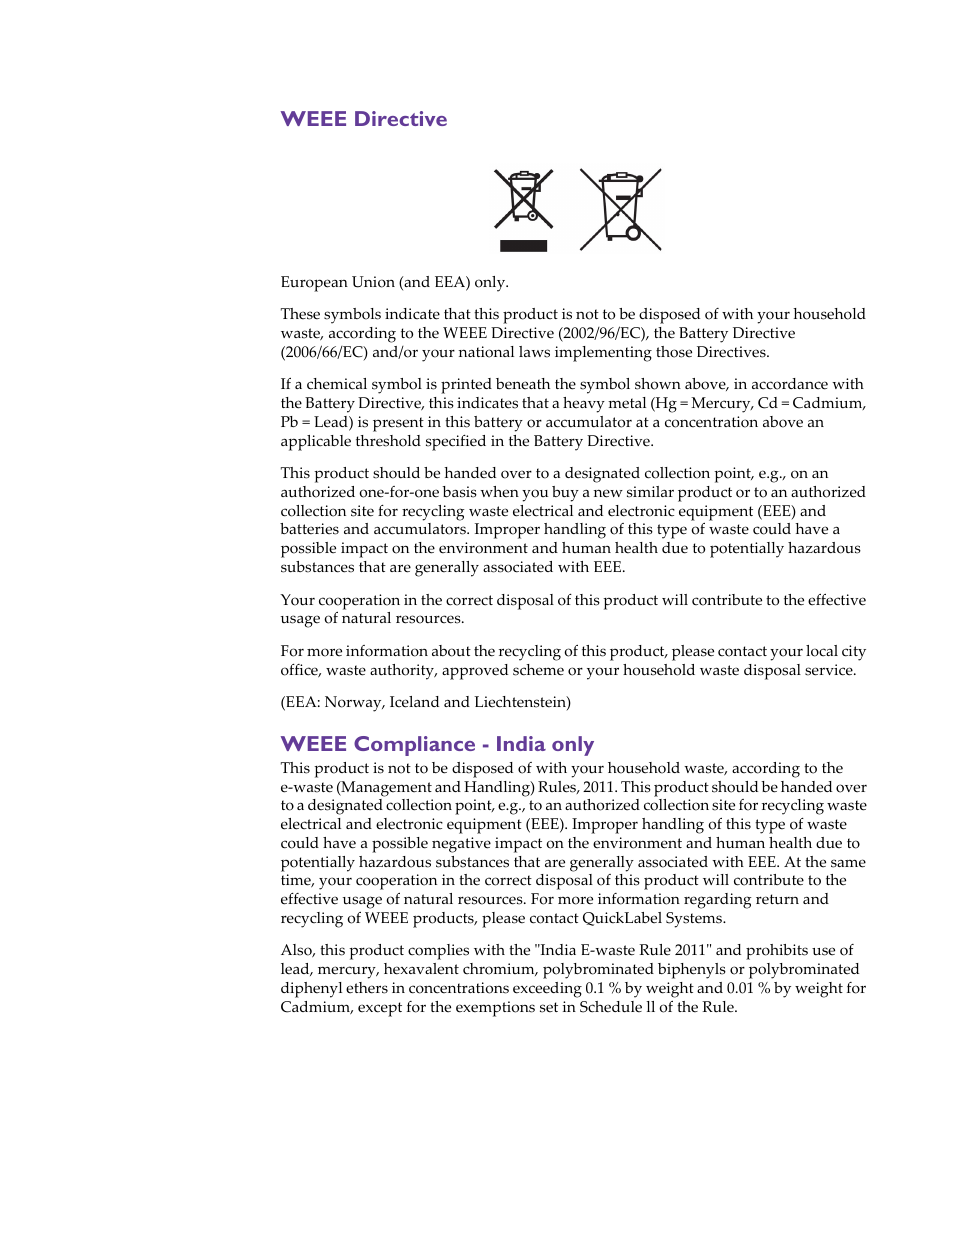 Weee directive, Weee compliance - india only | QuickLabel